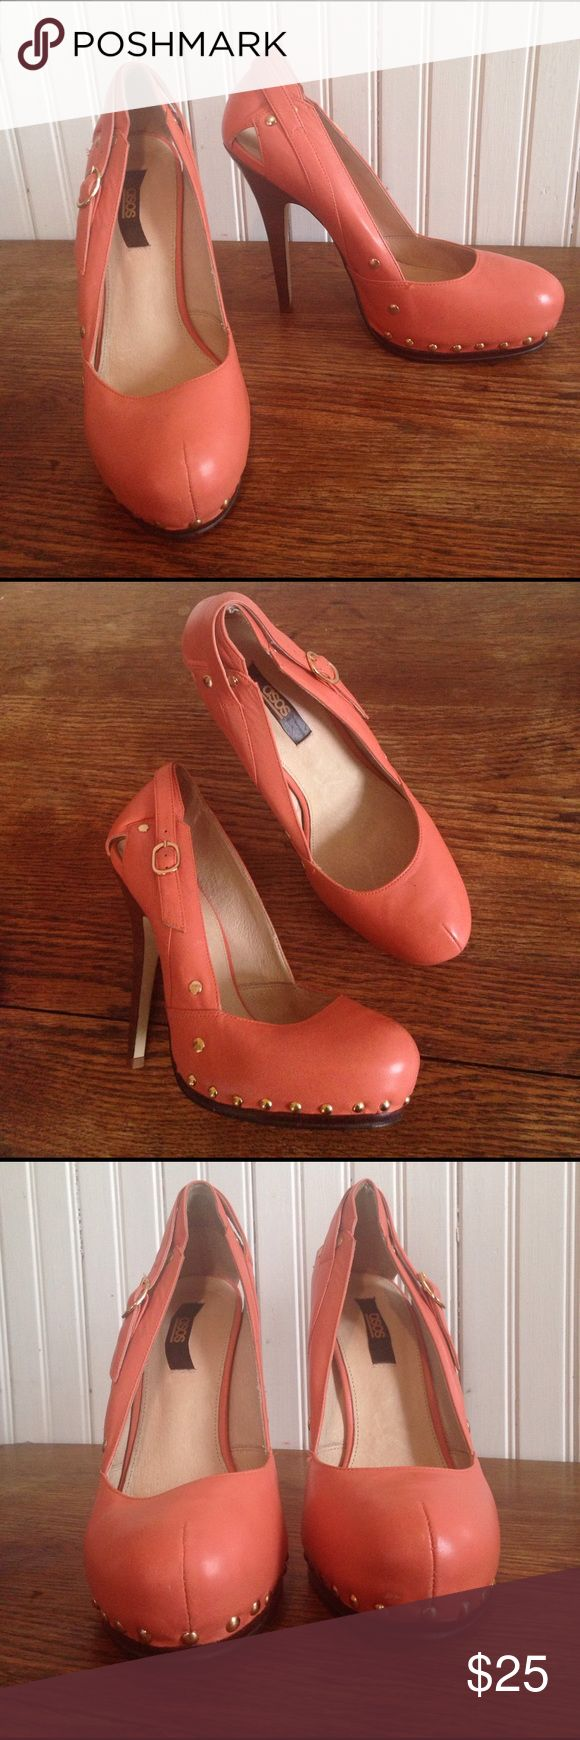 """Asos coral heels size 8 Asos coral heels size 8, gold tone hardware , 5"""" heels , 2  scuff marks as seen in the pictures otherwise excellent condition ASOS Shoes"""